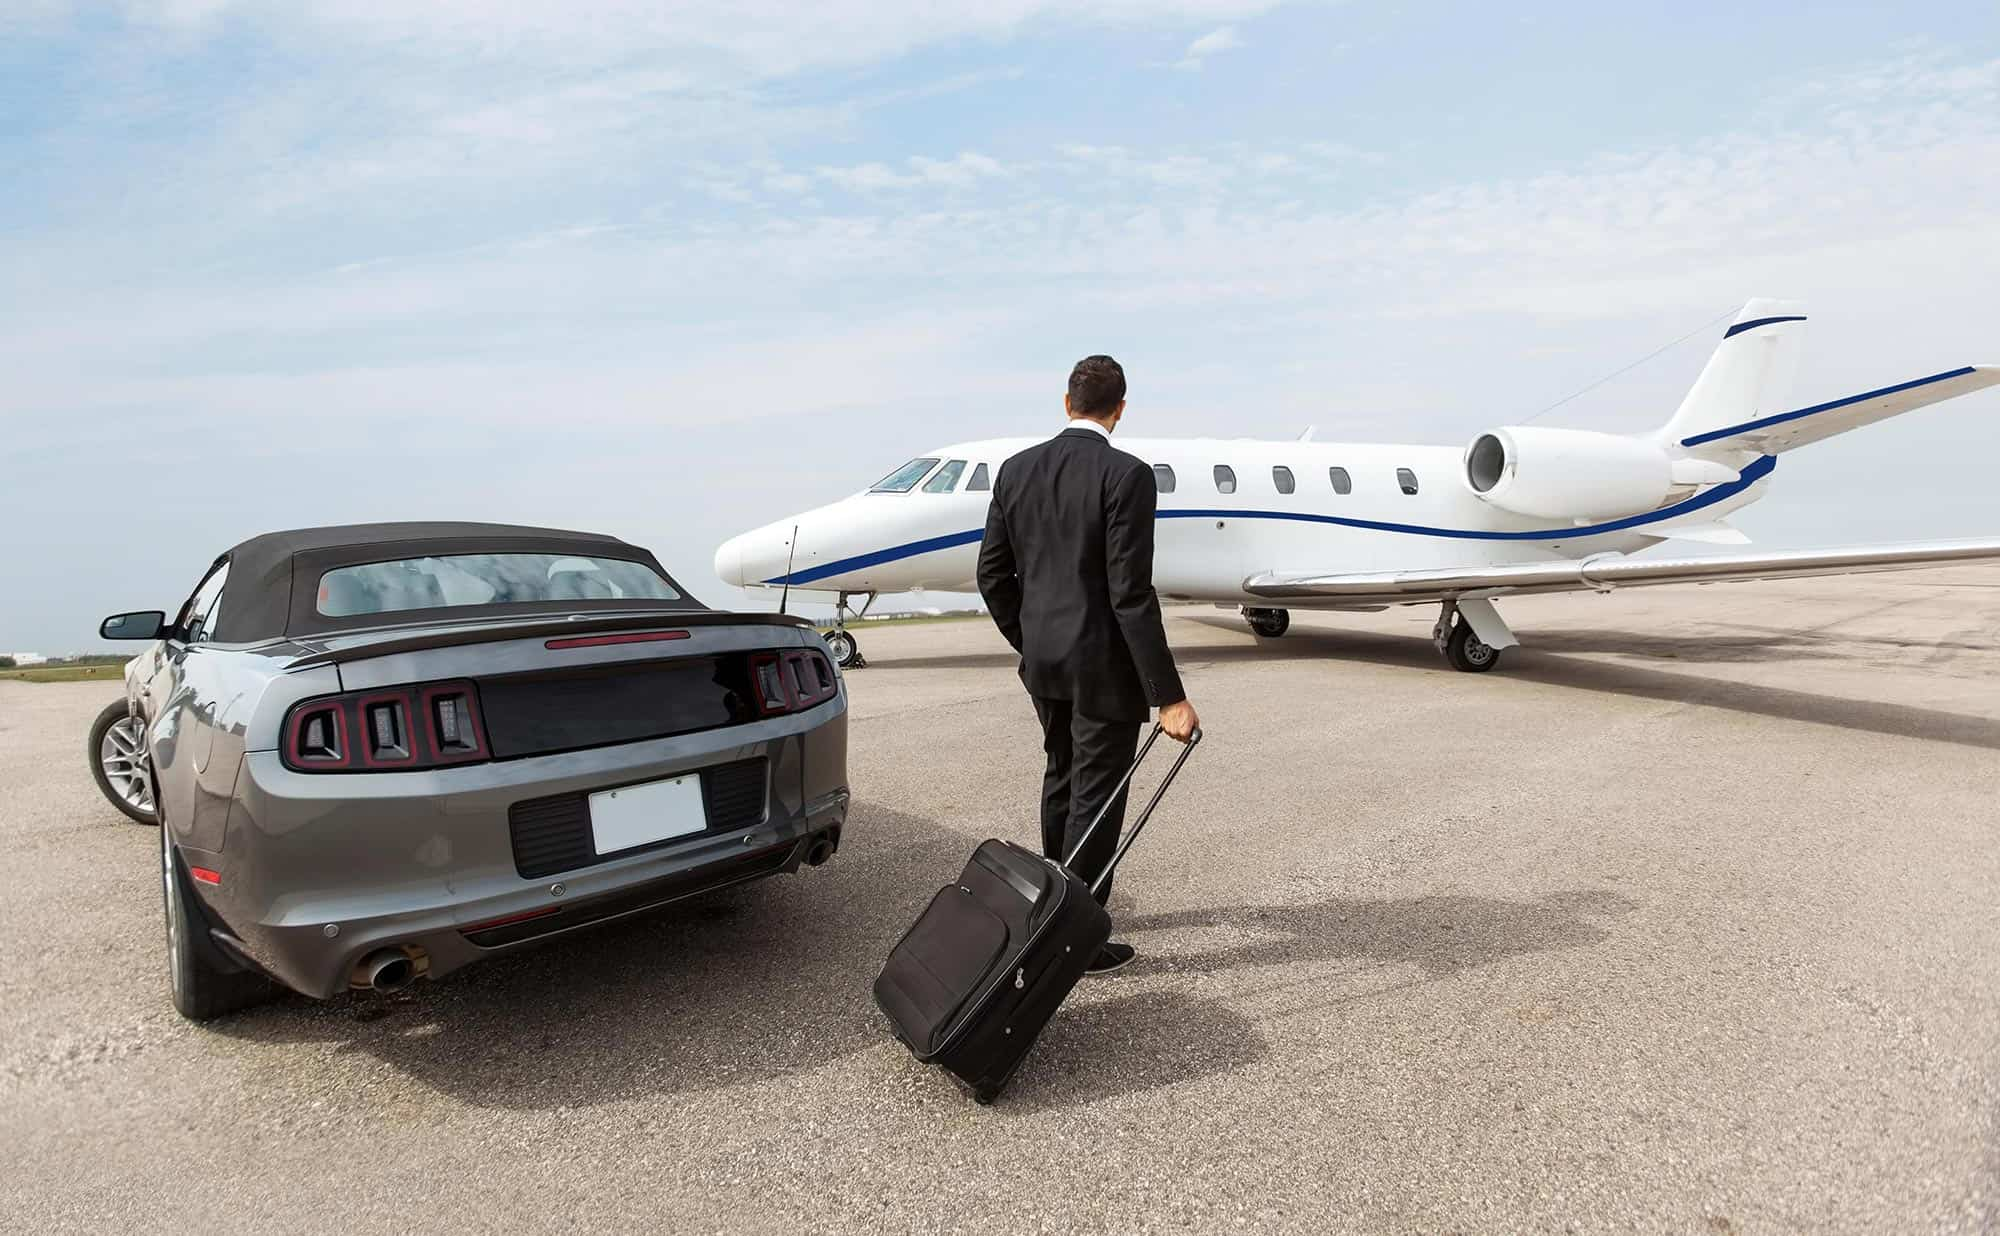 Man approaching private jet with luggage